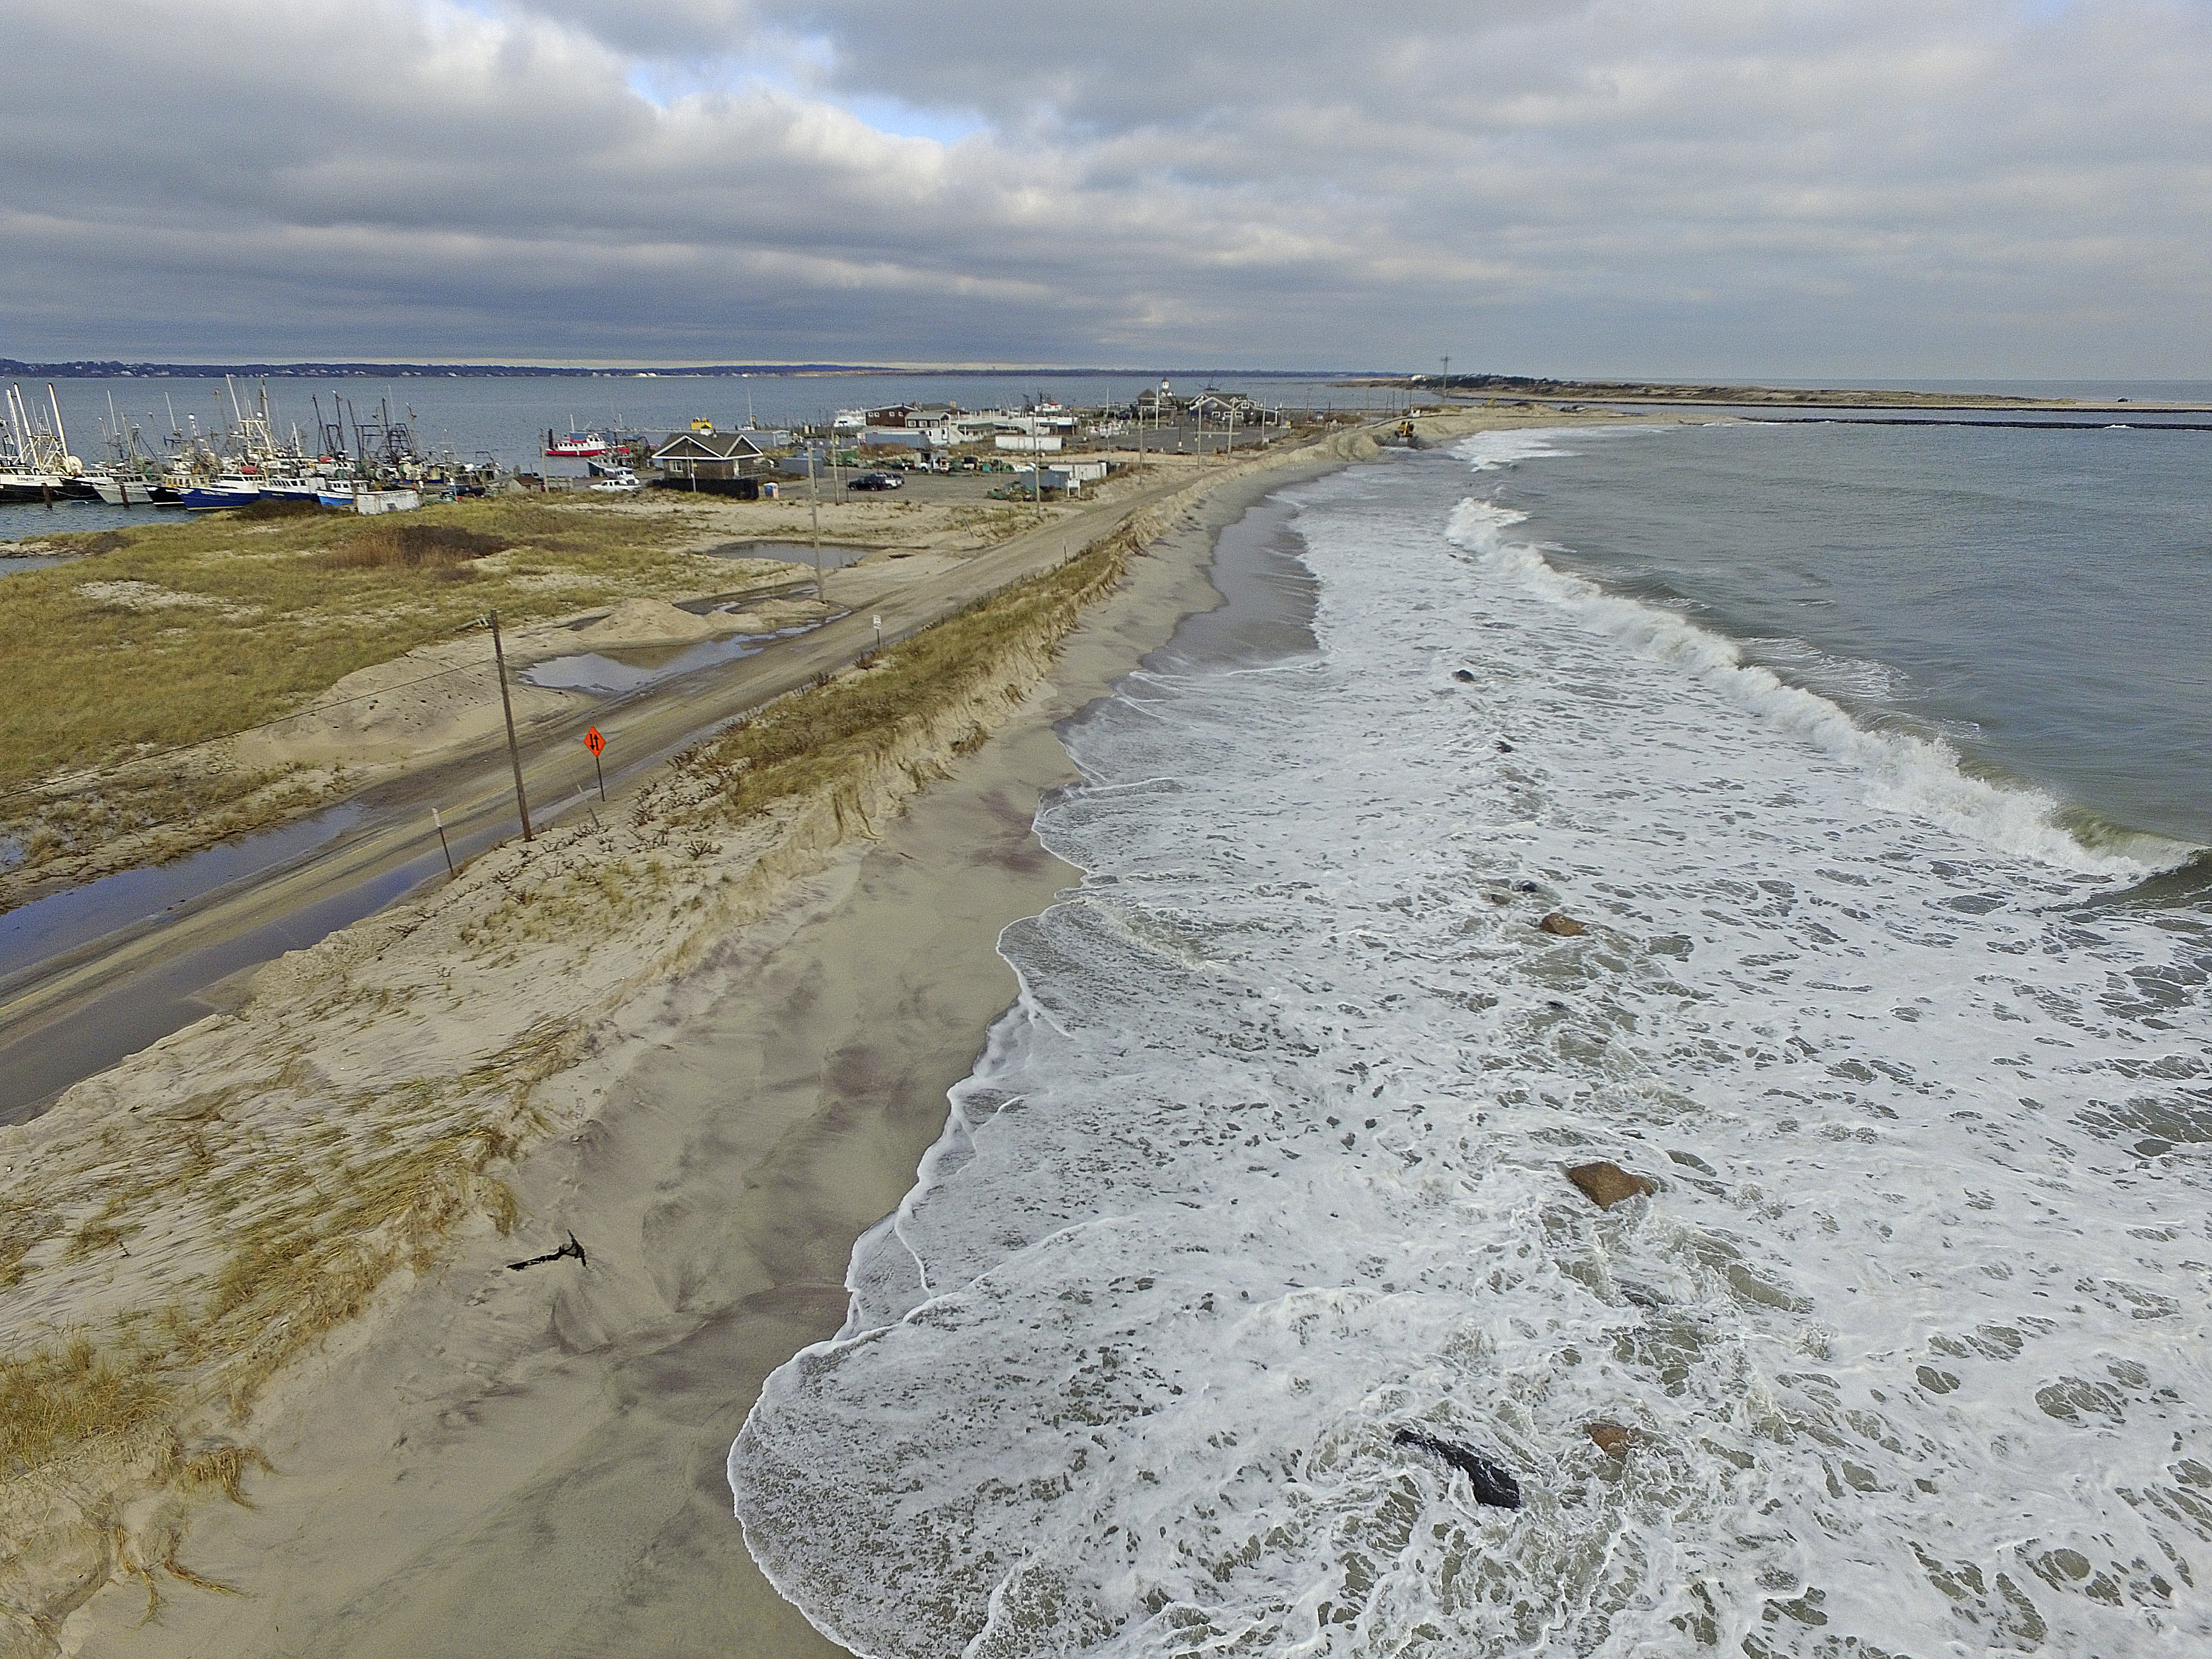 Crews work to bolster the damaged dunes on Tuesday afternoon.